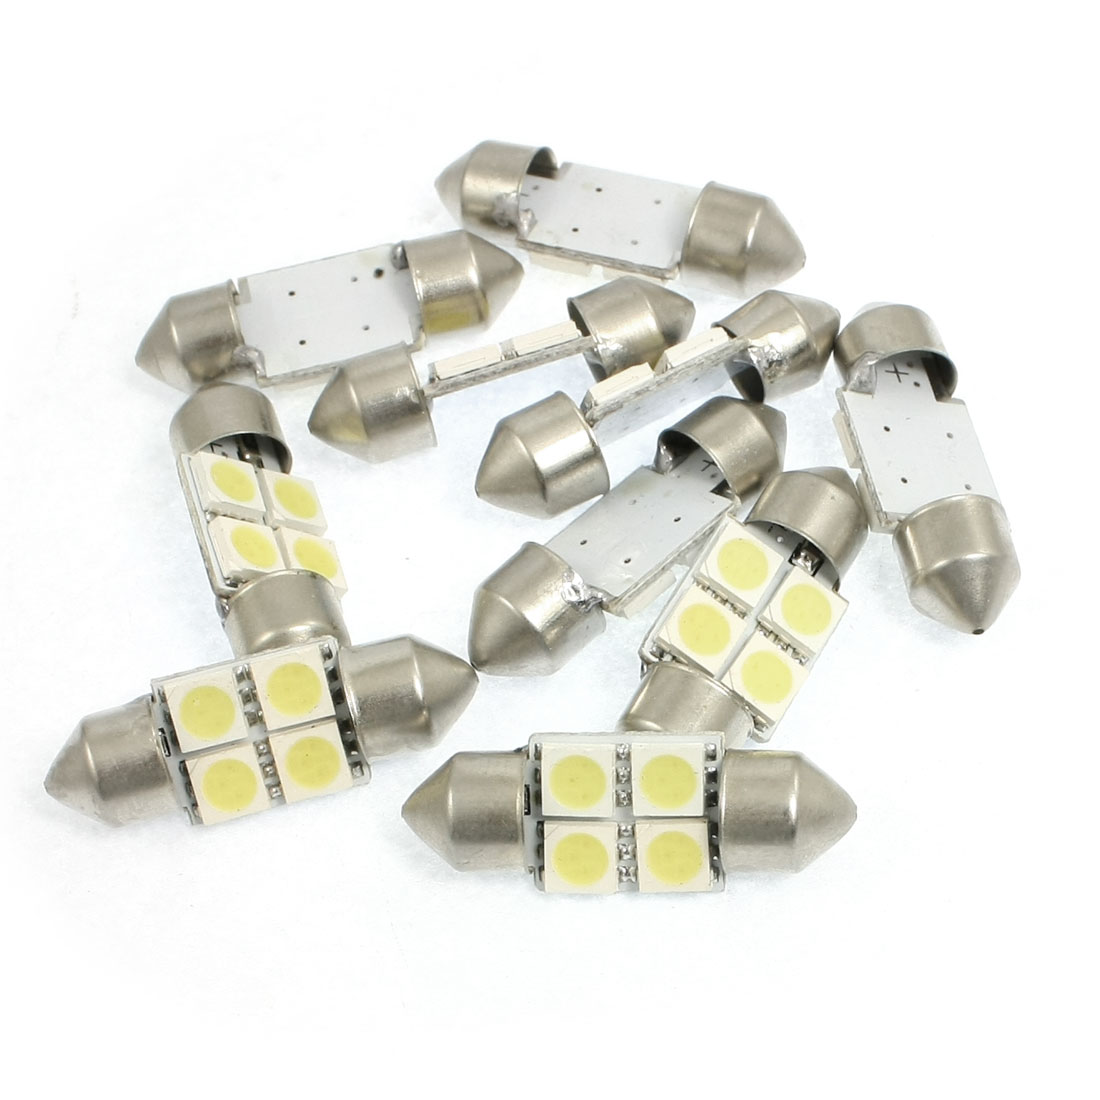 10 Pcs Car Interior White 5050 4 SMD Festoon LED Light Dome Lamp 31mm DC 12V internal